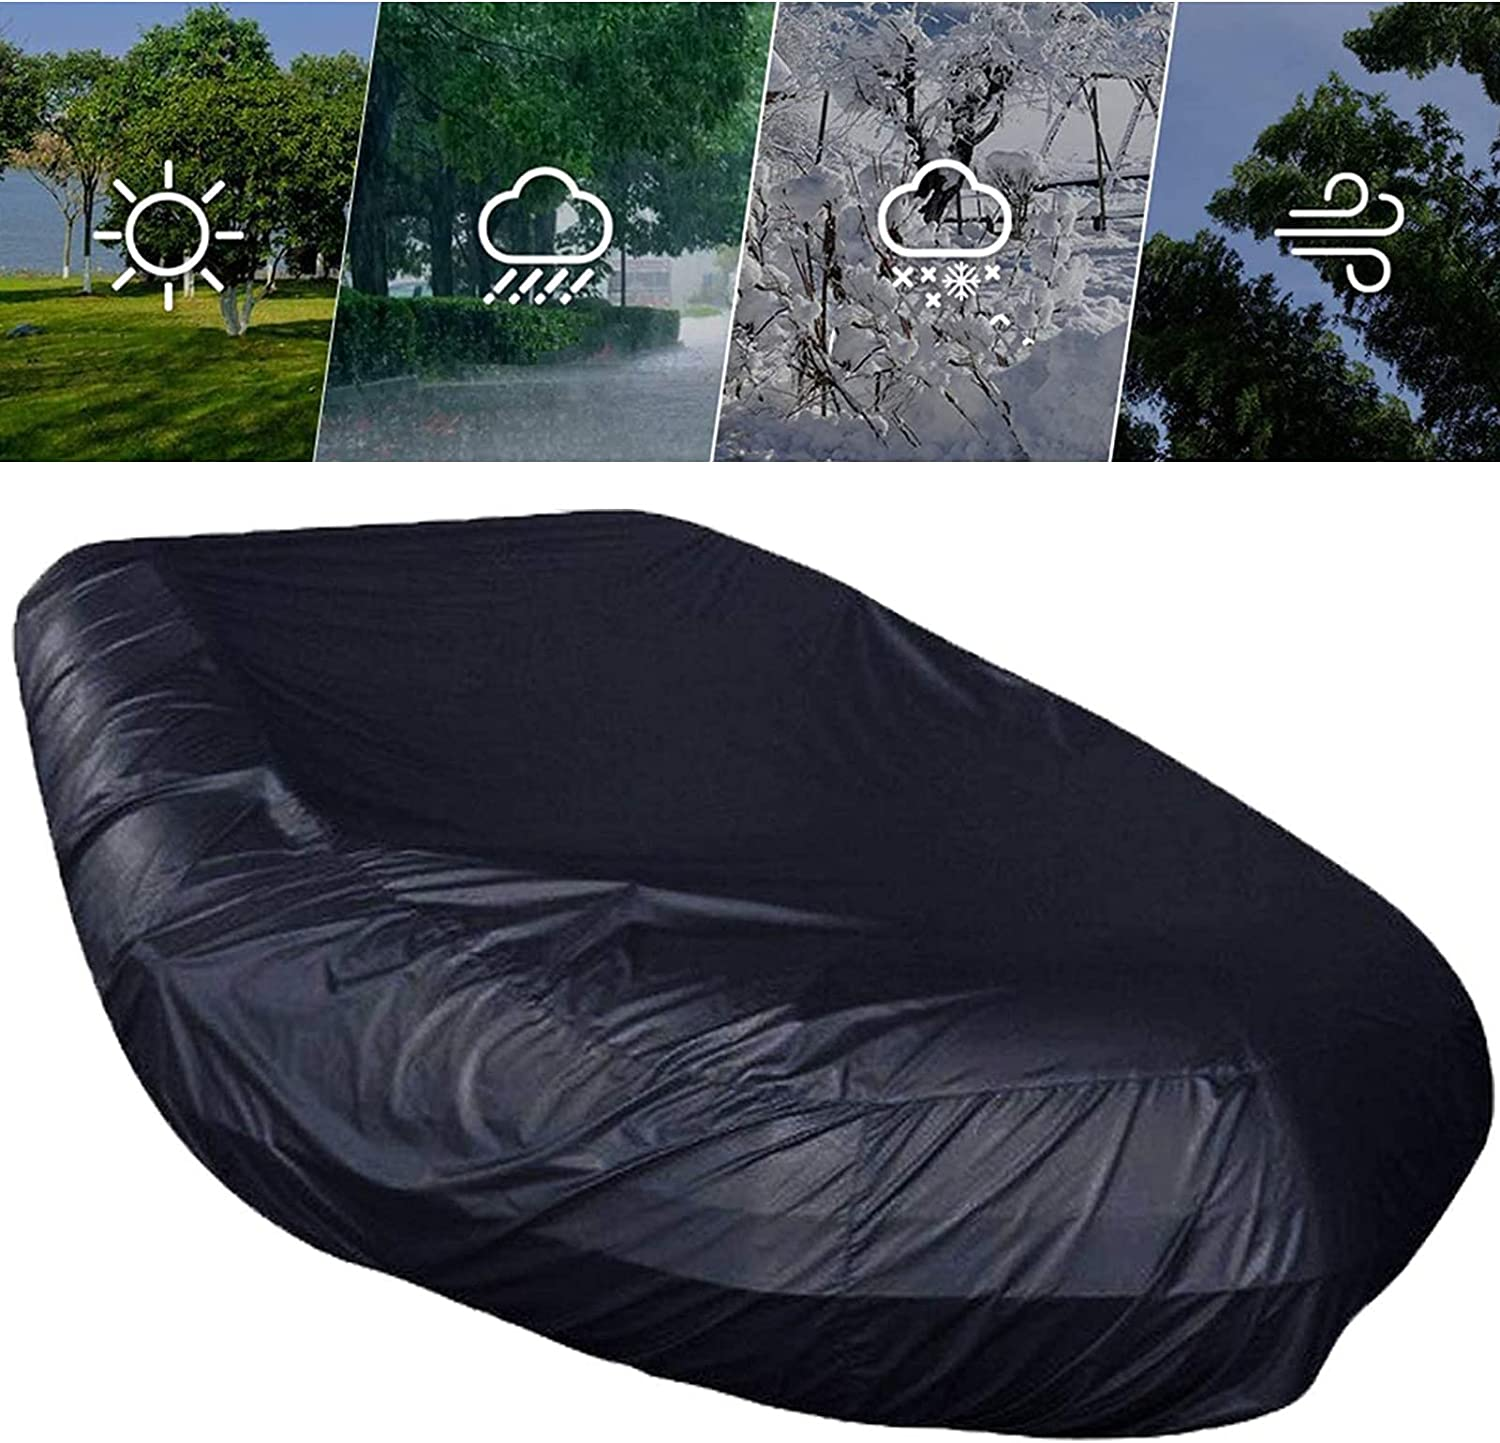 Inflatable Boat Cover Waterproof Heavy specialty shop Duty outlet Antisnow R Antidust